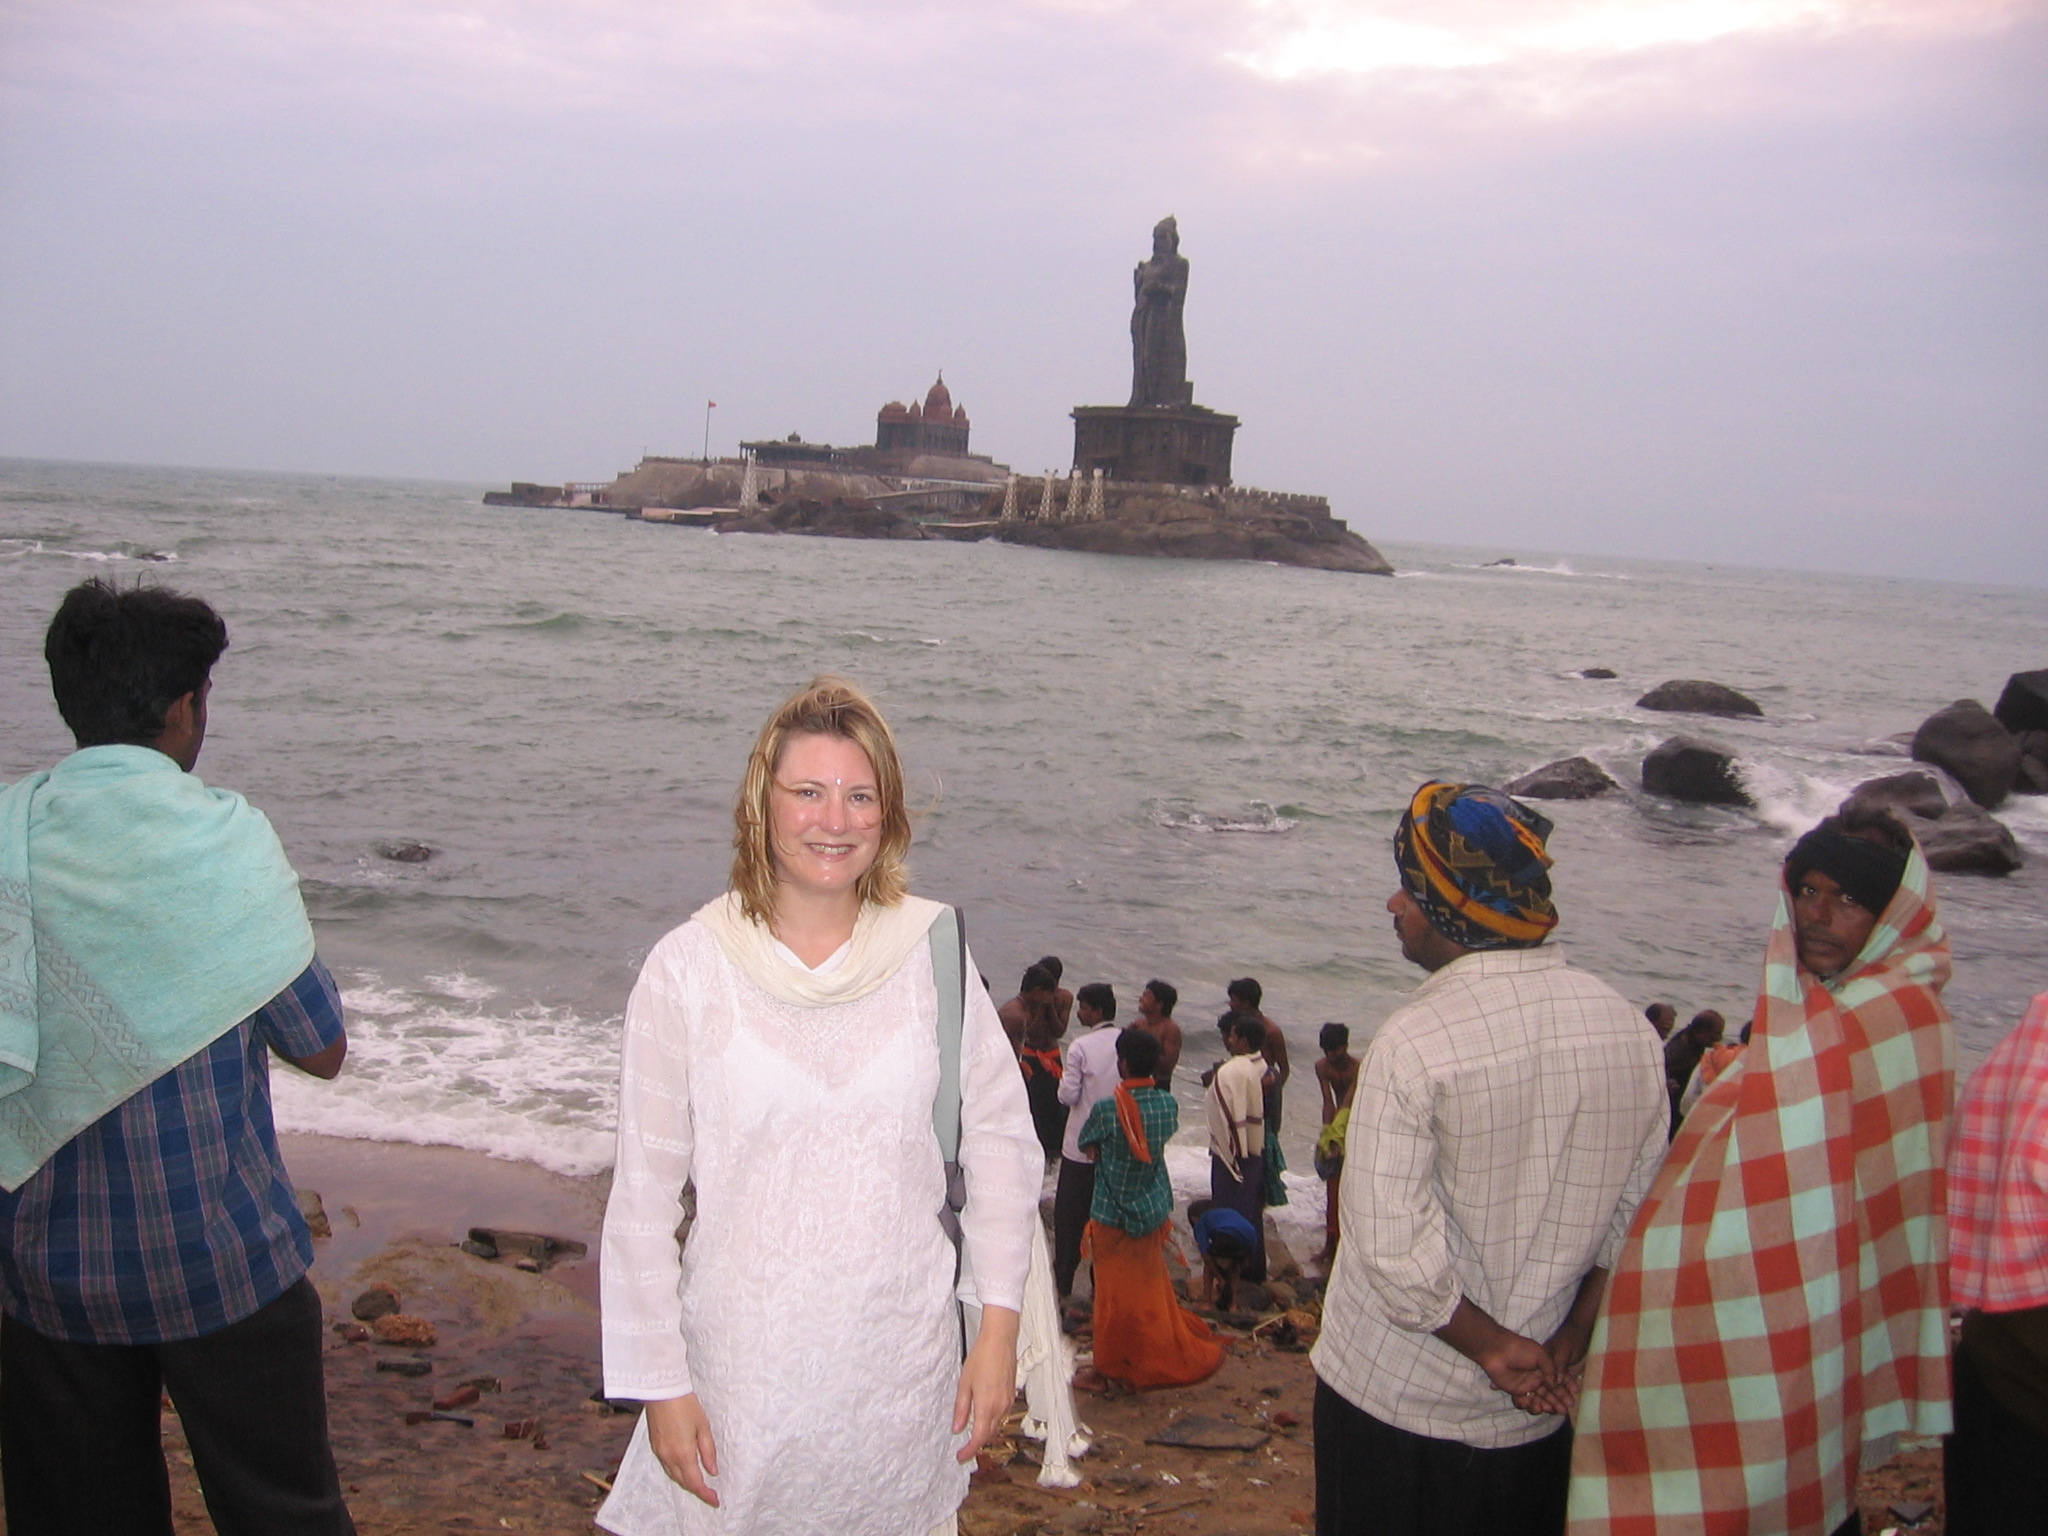 Moi, in salwar kameez, at Kanyakumari - the very southern tip of India